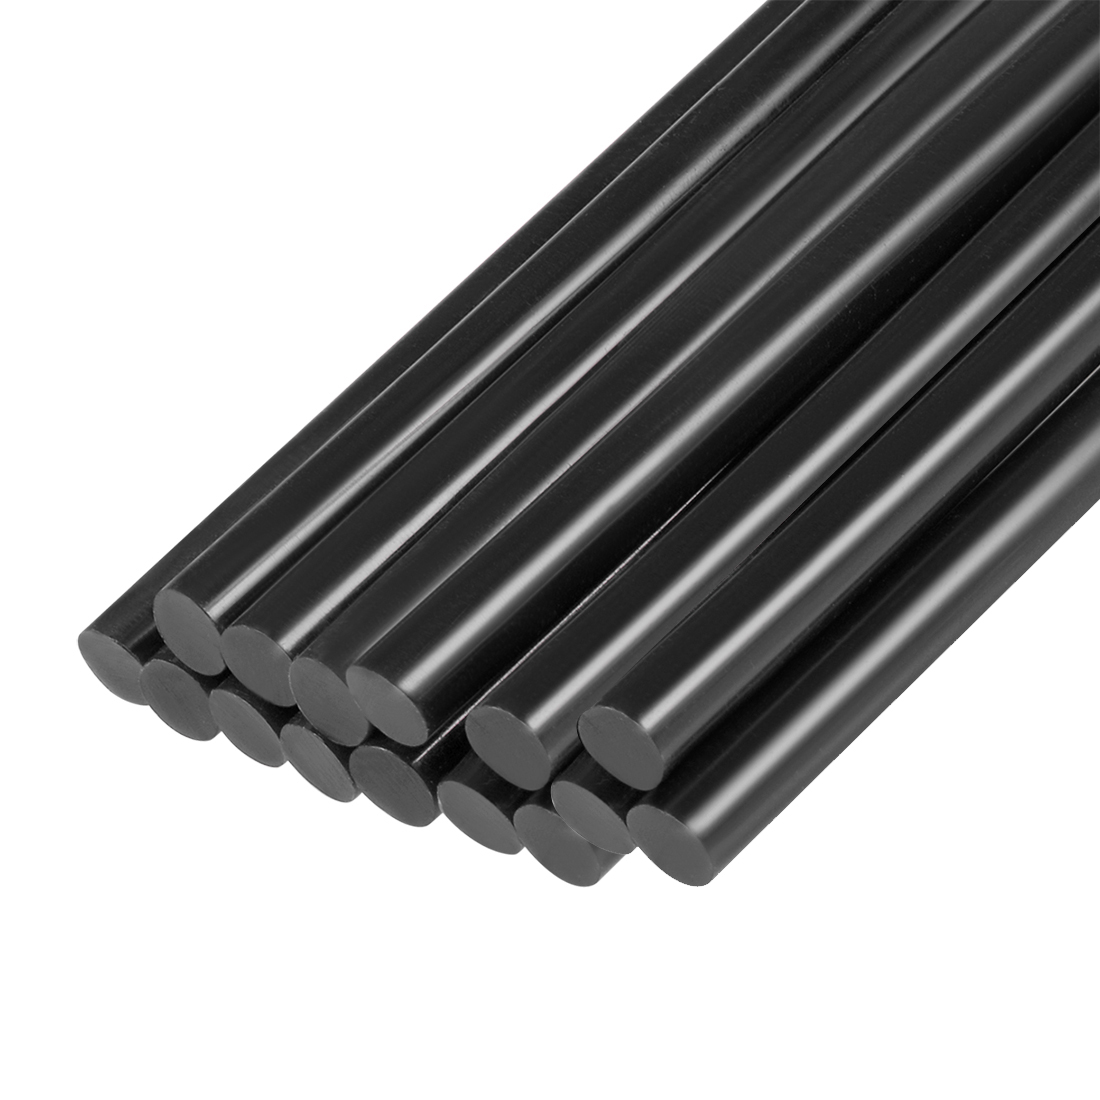 15 Pcs 11mm Dia 270mm Long Crafting Models Black Plastic Hot Melt Glue Sticks